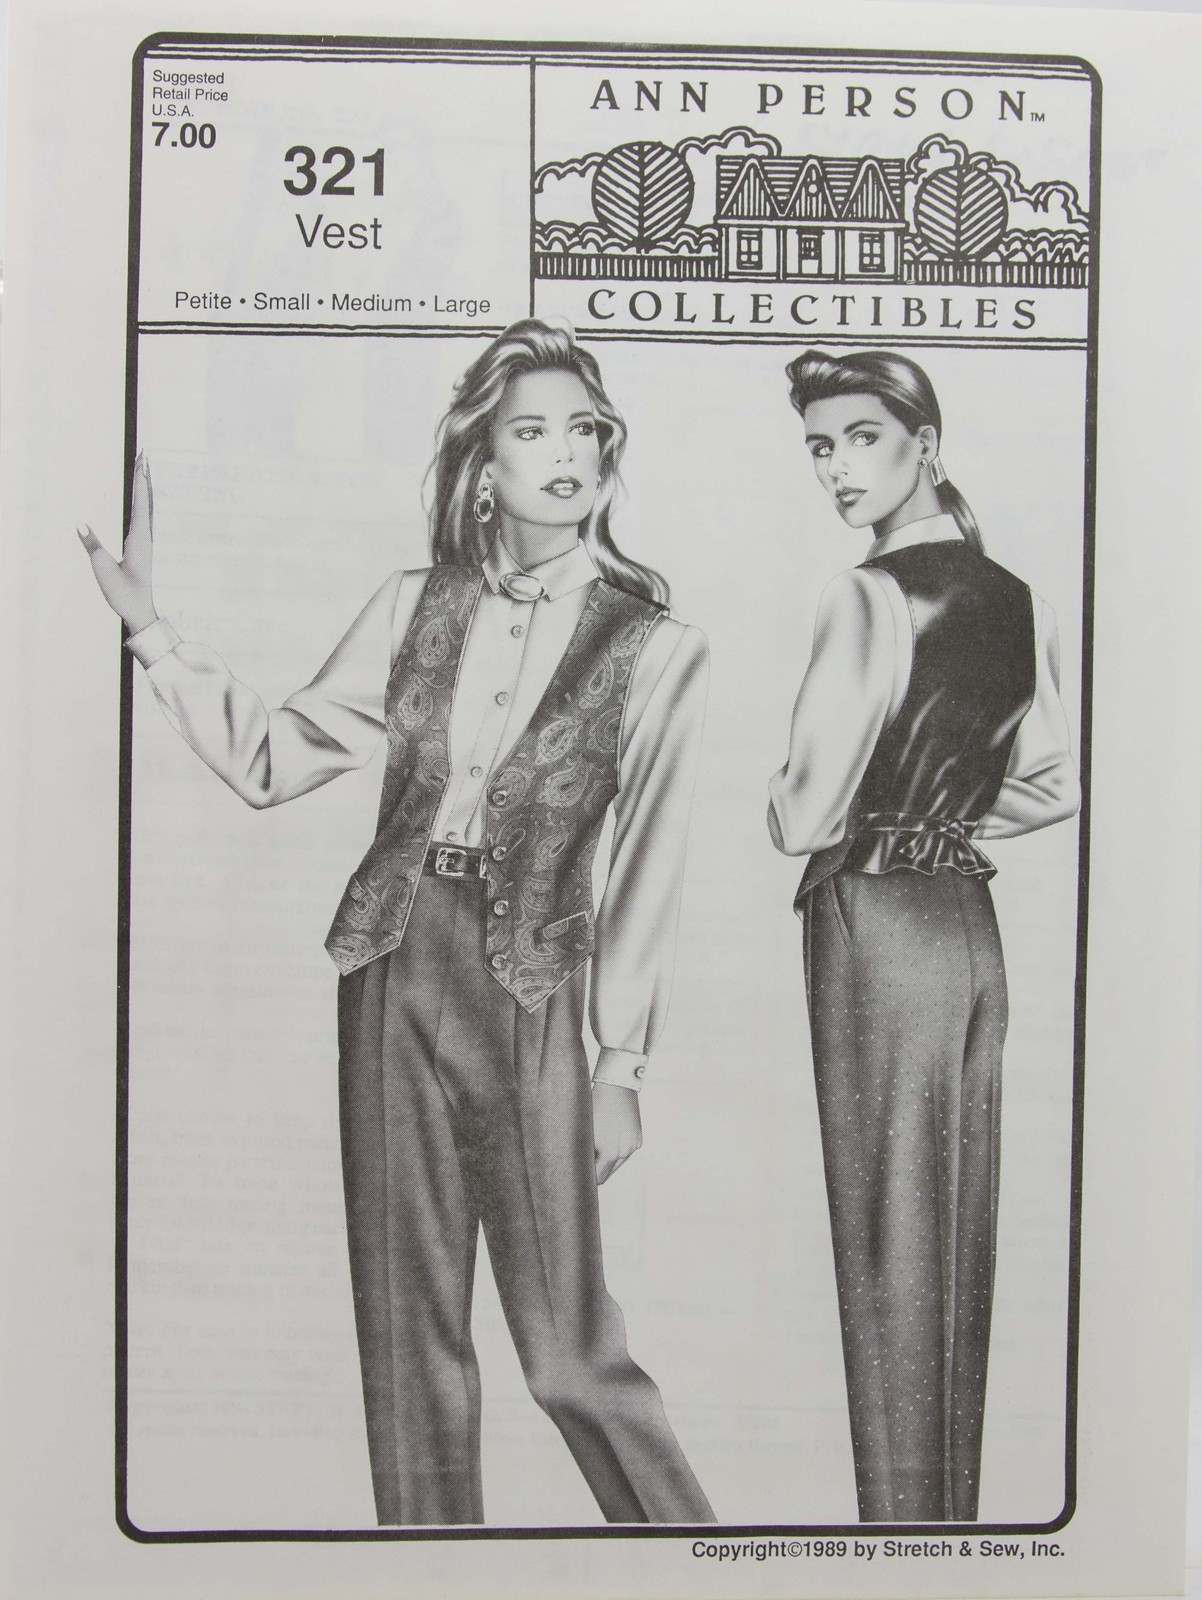 Stretch & Sew Sewing Pattern- Ann Person Collectibles #321 - Vest